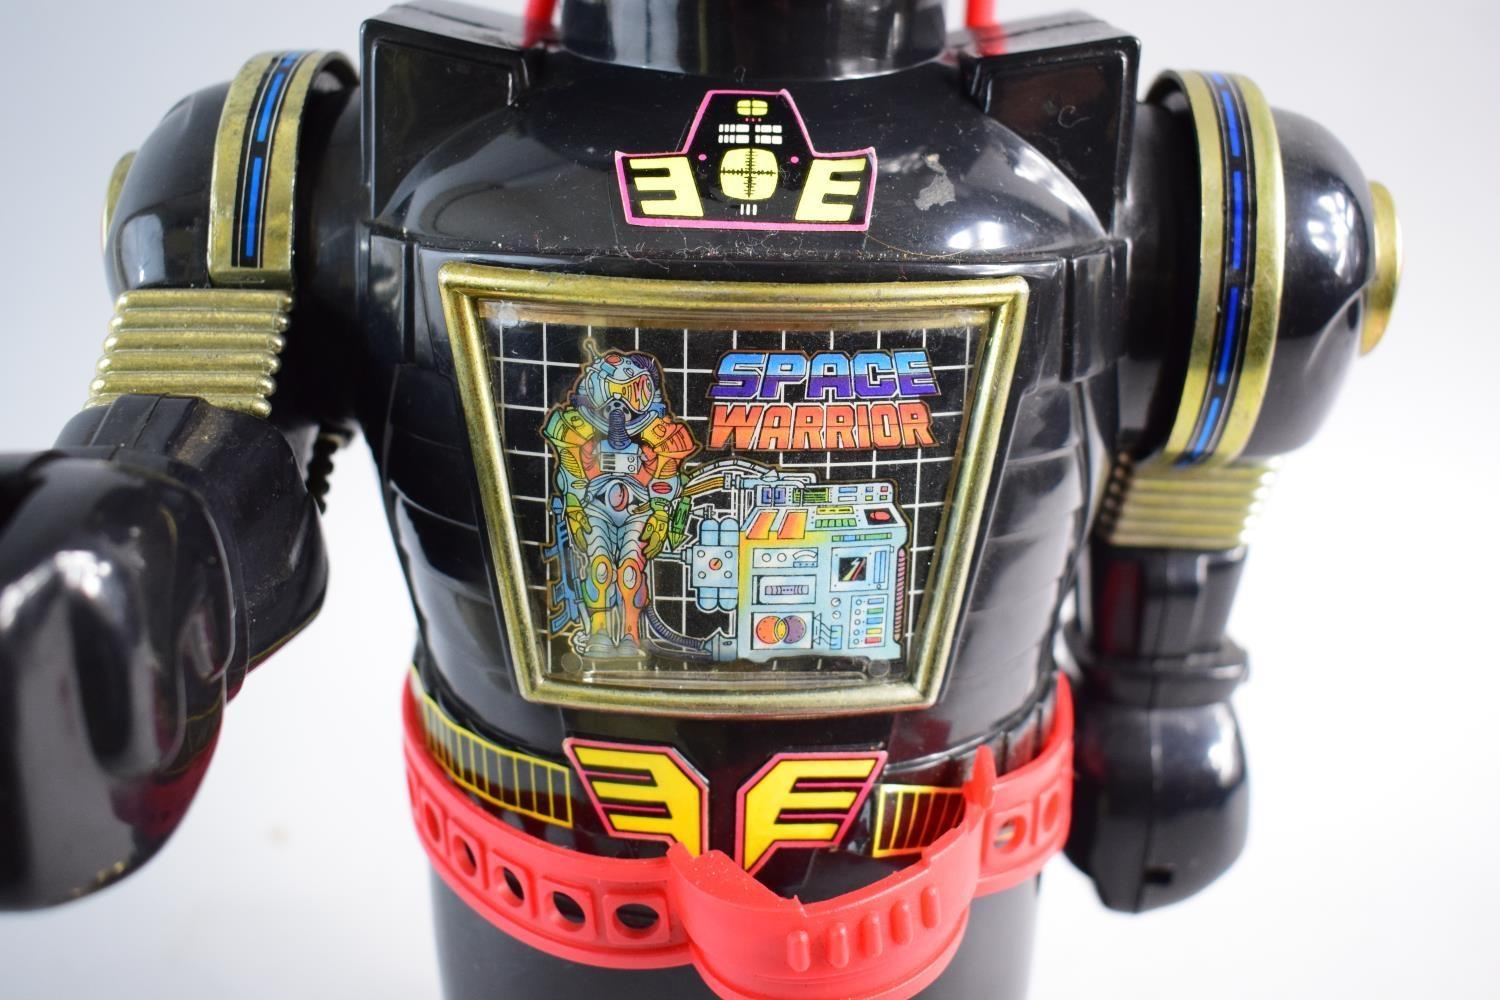 Lot 42 - A Vintage Style Battery Operated Robot Toy by Cheng Cheng Toys. 38cms High